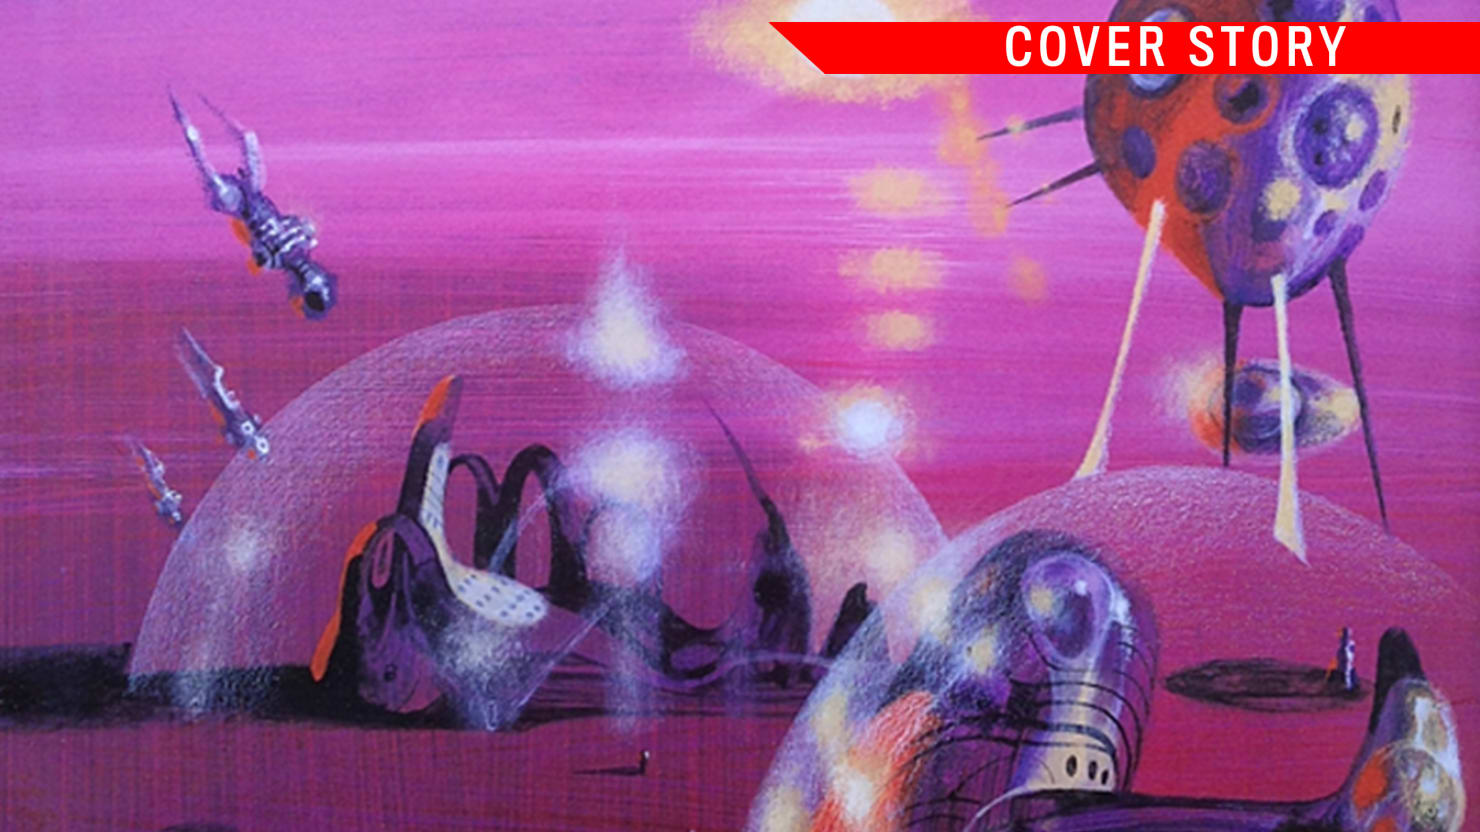 Cover story: Surrealism of Richard Powers Picketing Books 79